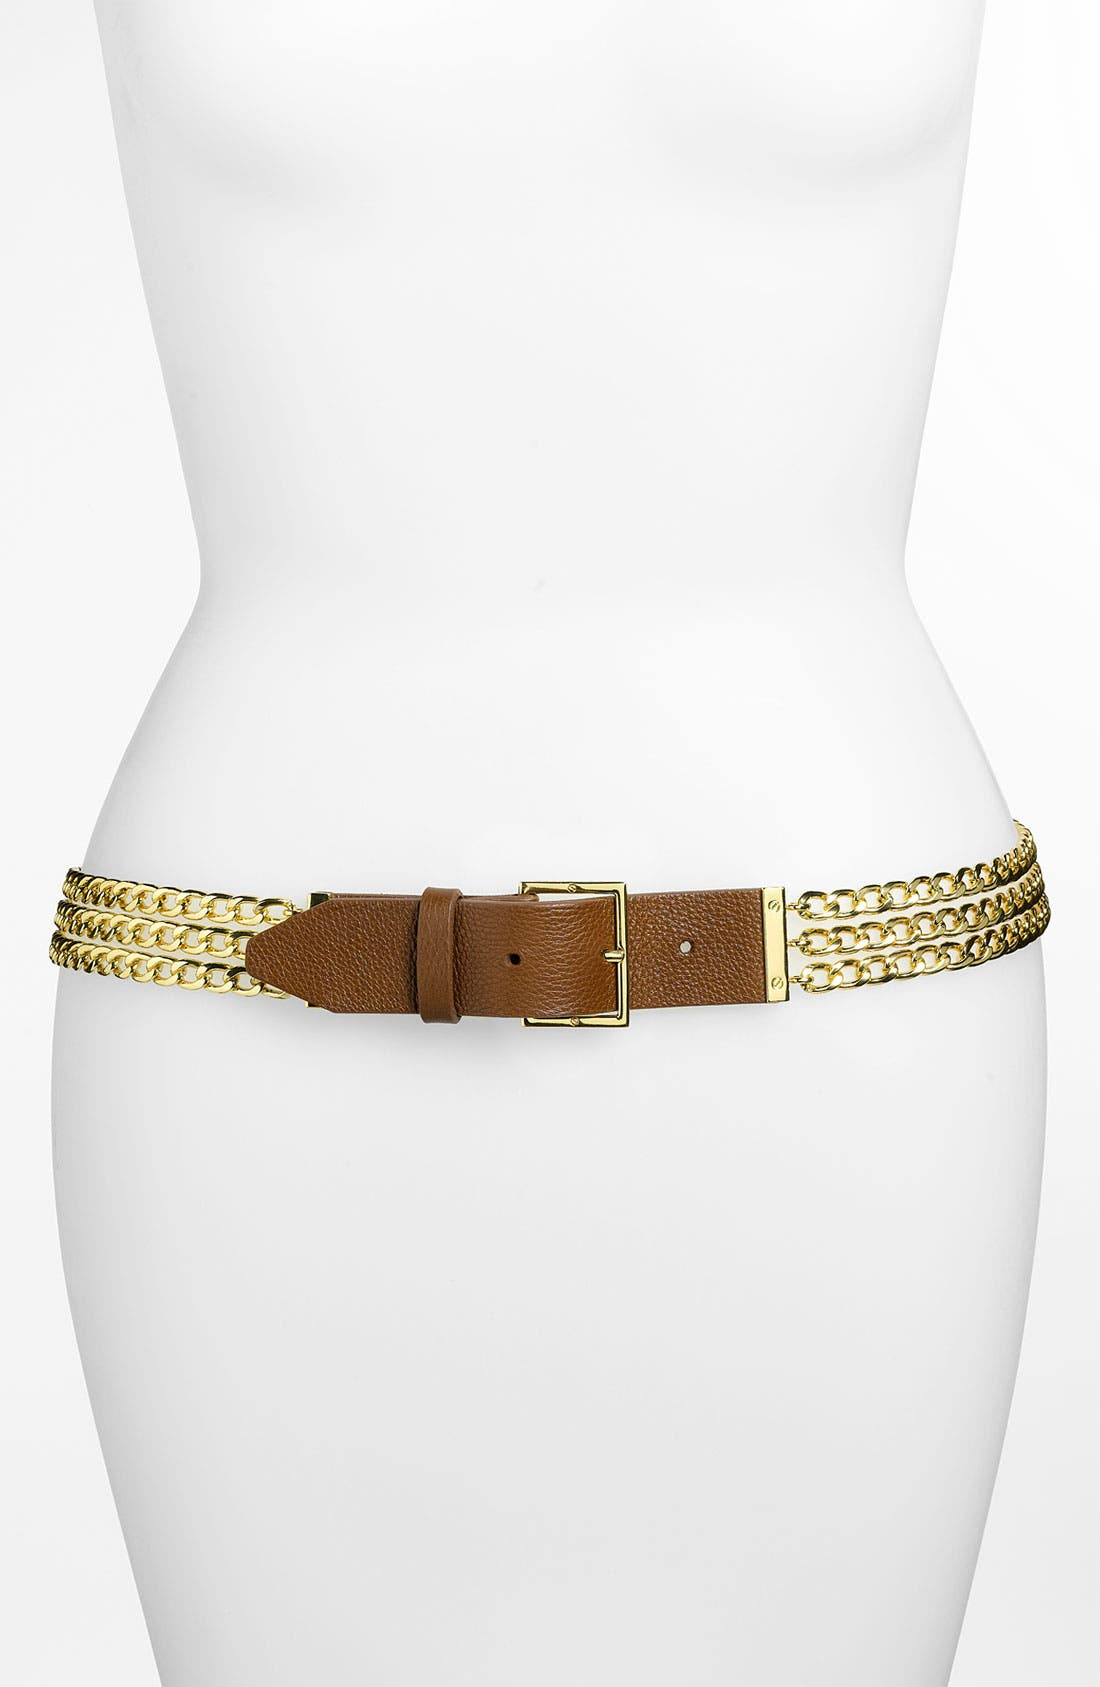 Main Image - Tory Burch Chain Belt